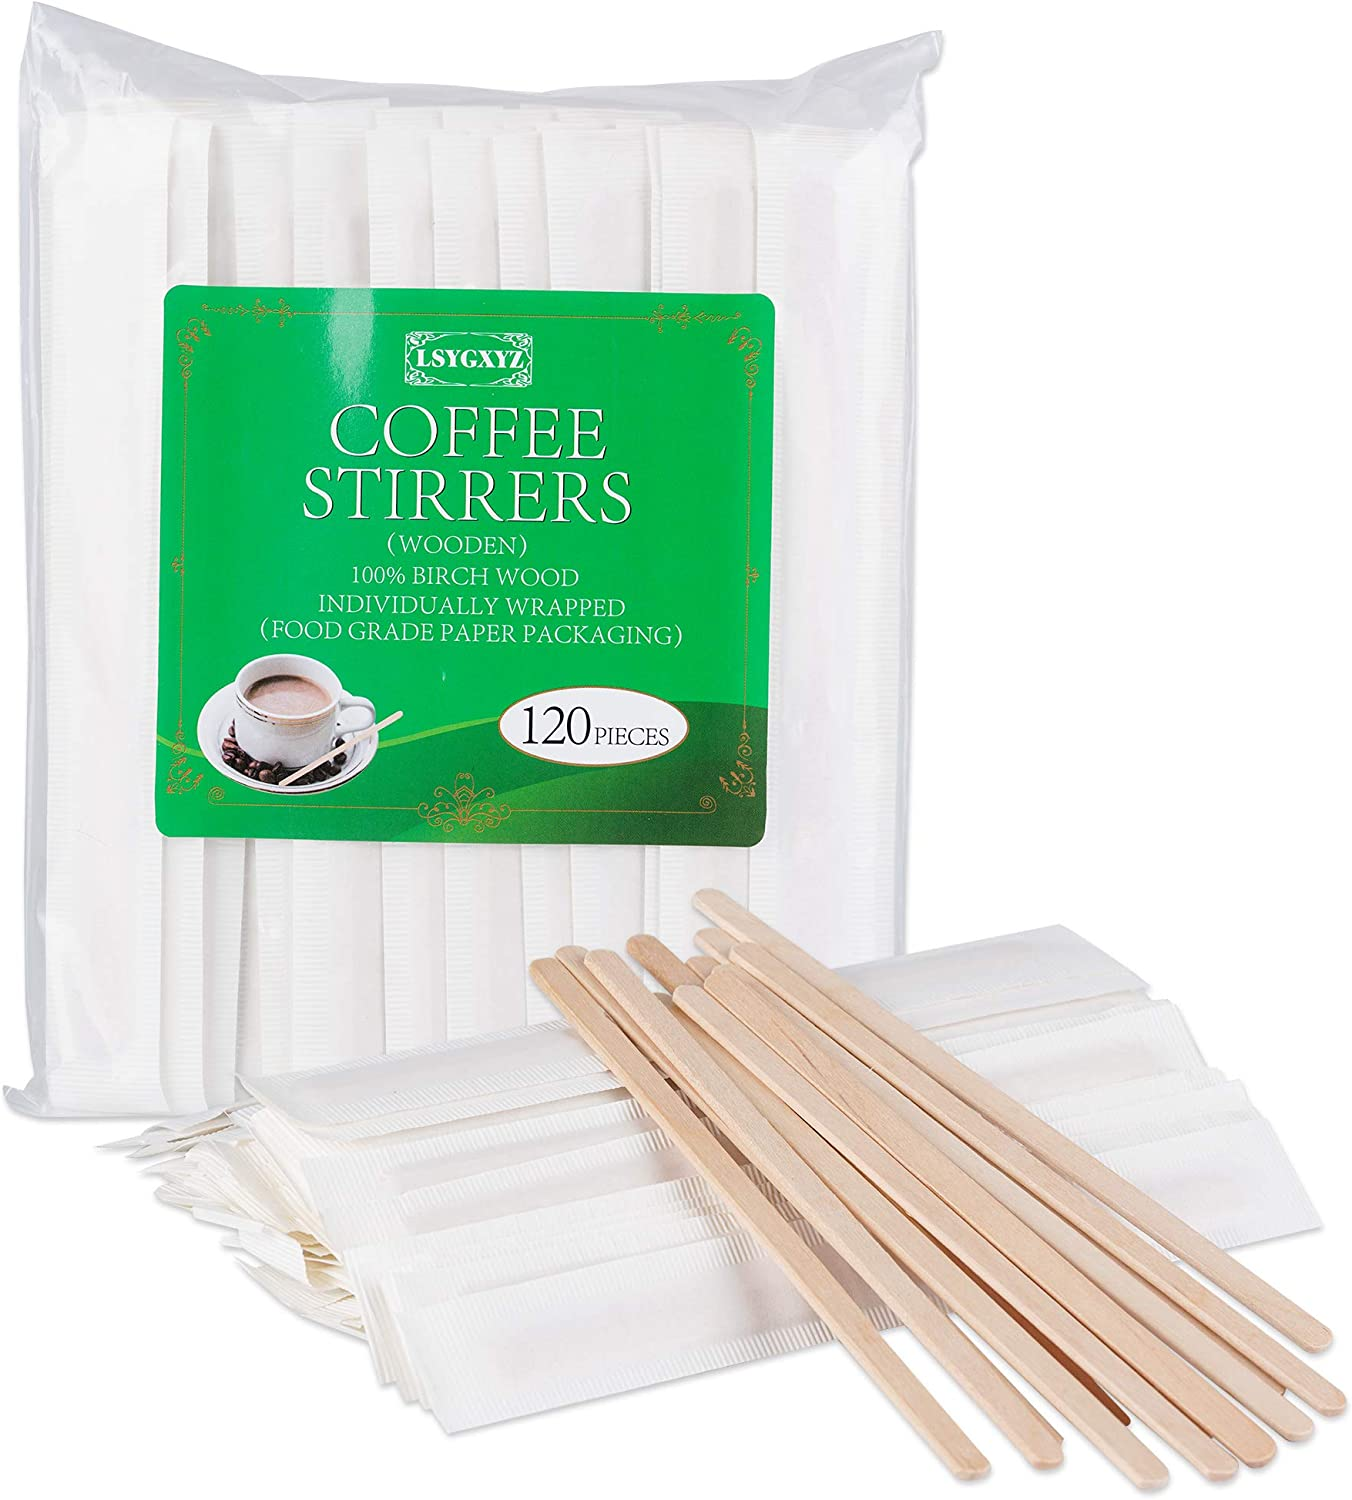 LSYGXYZ 5.5 Inch Disposable Coffee Stirrers, Individual Wrapped Wooden Stir Sticks Round Head Juice Beverage Stirrers, 120 Pieces